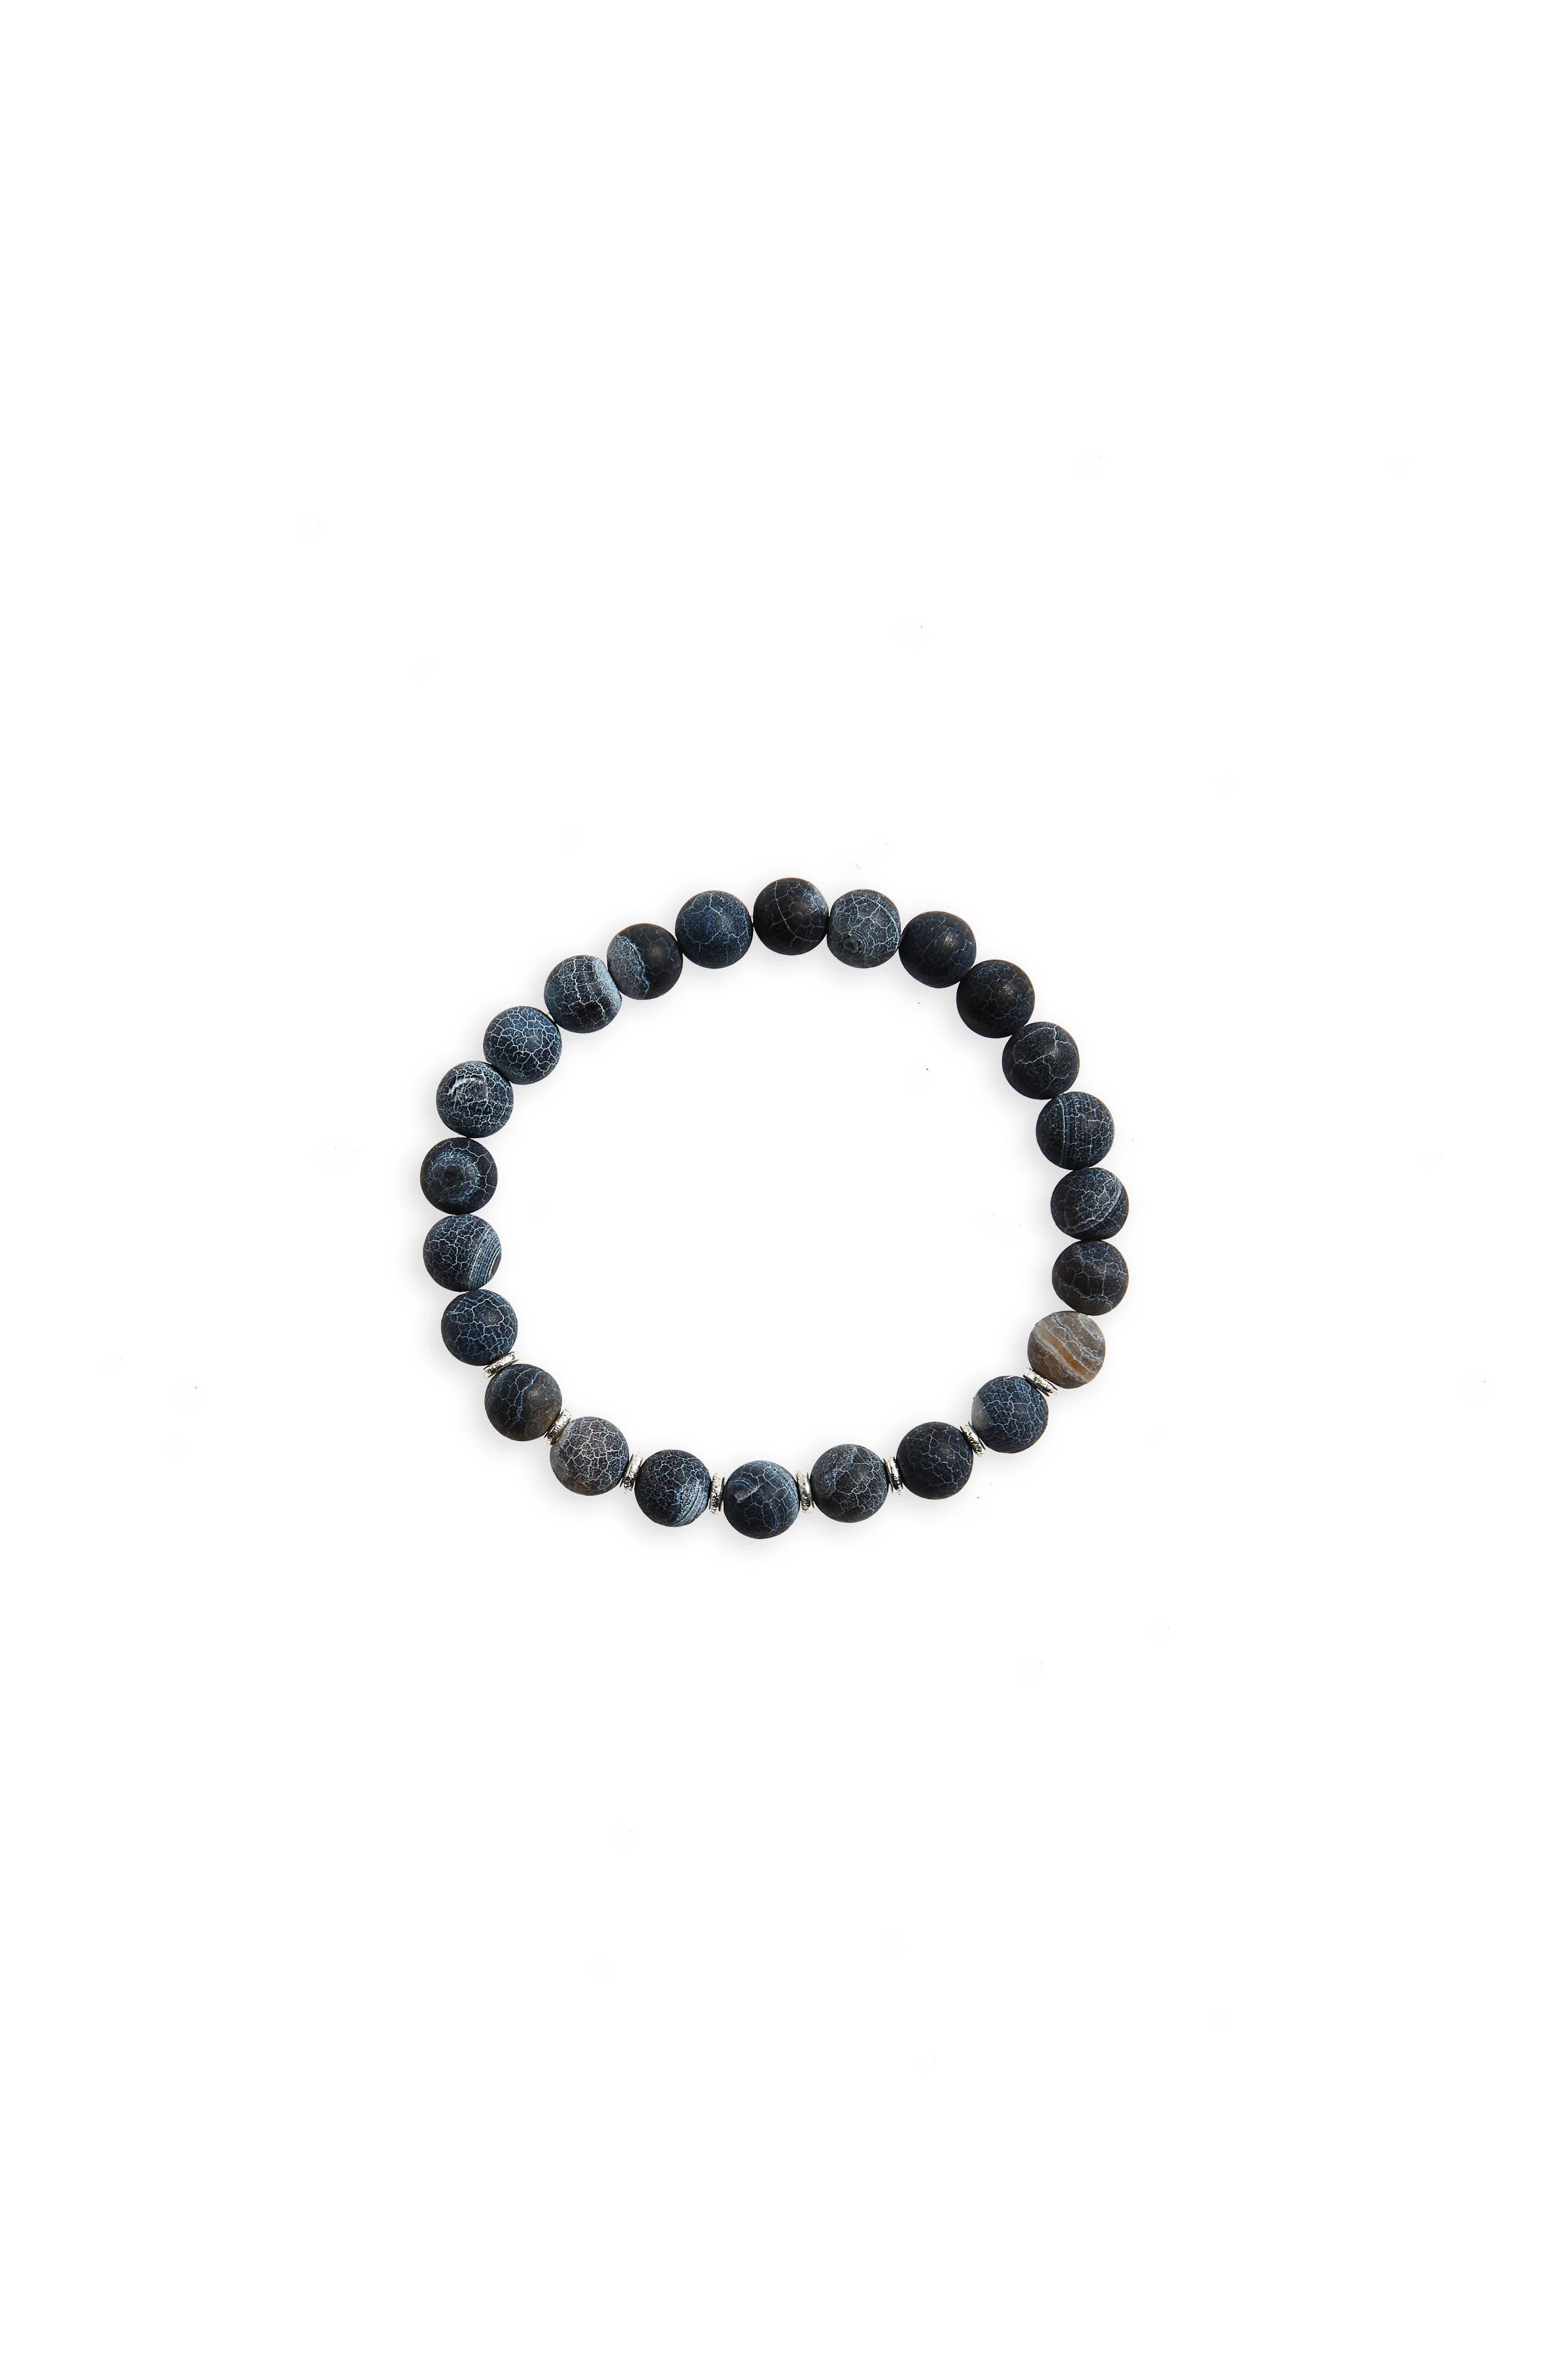 Agate Bead Bracelet,                         Main,                         color, Black